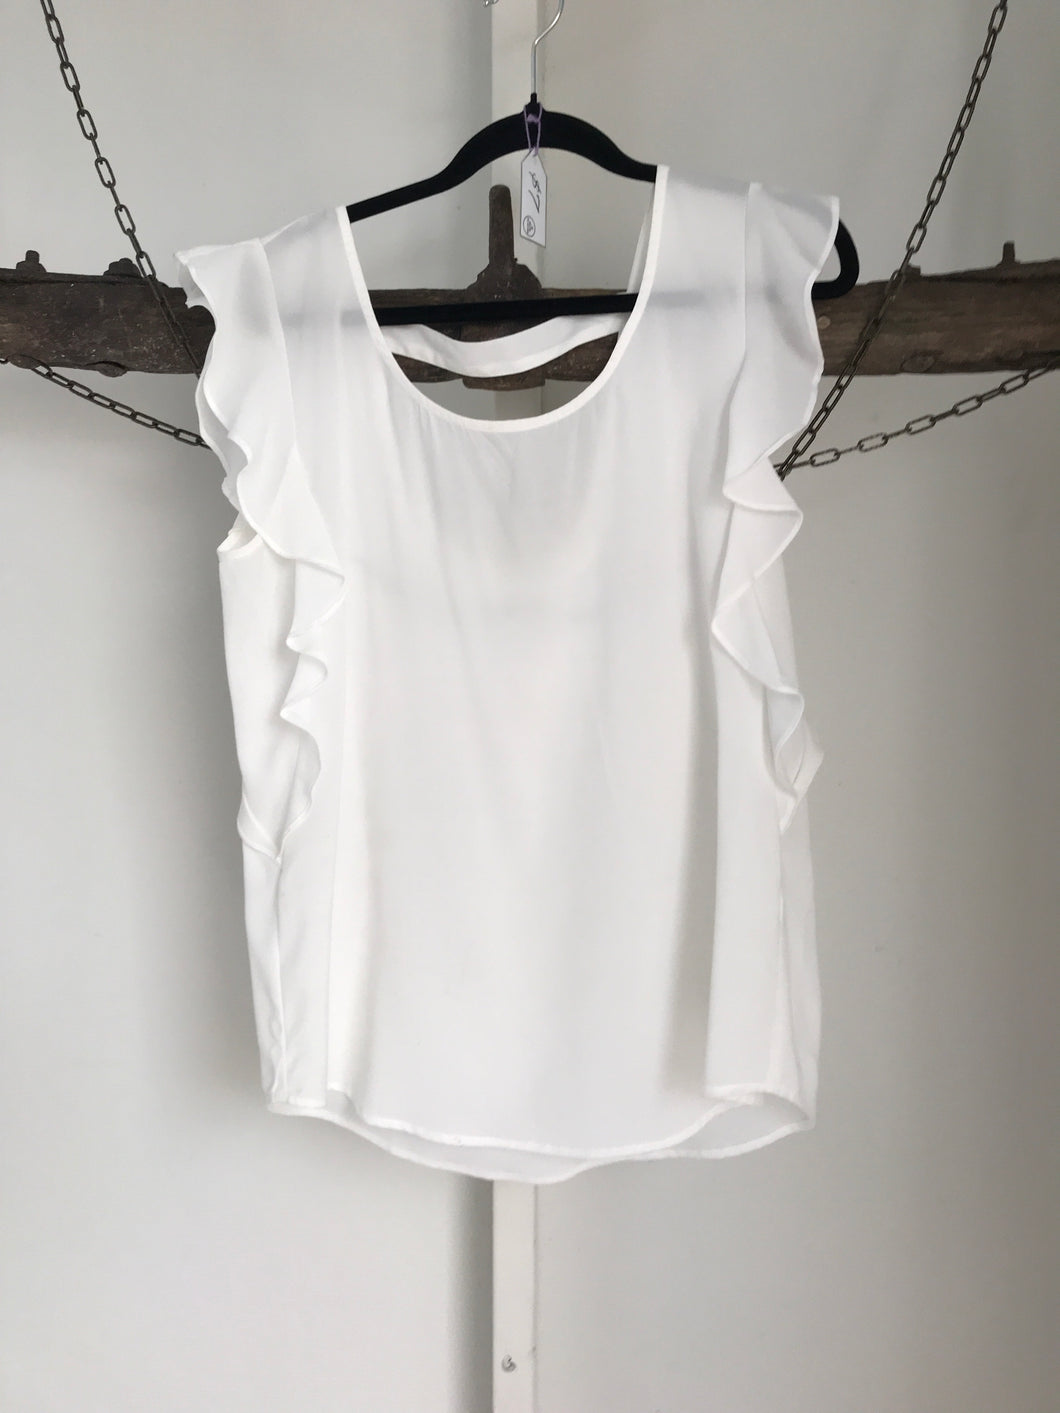 Jeanswest White Top Size 10